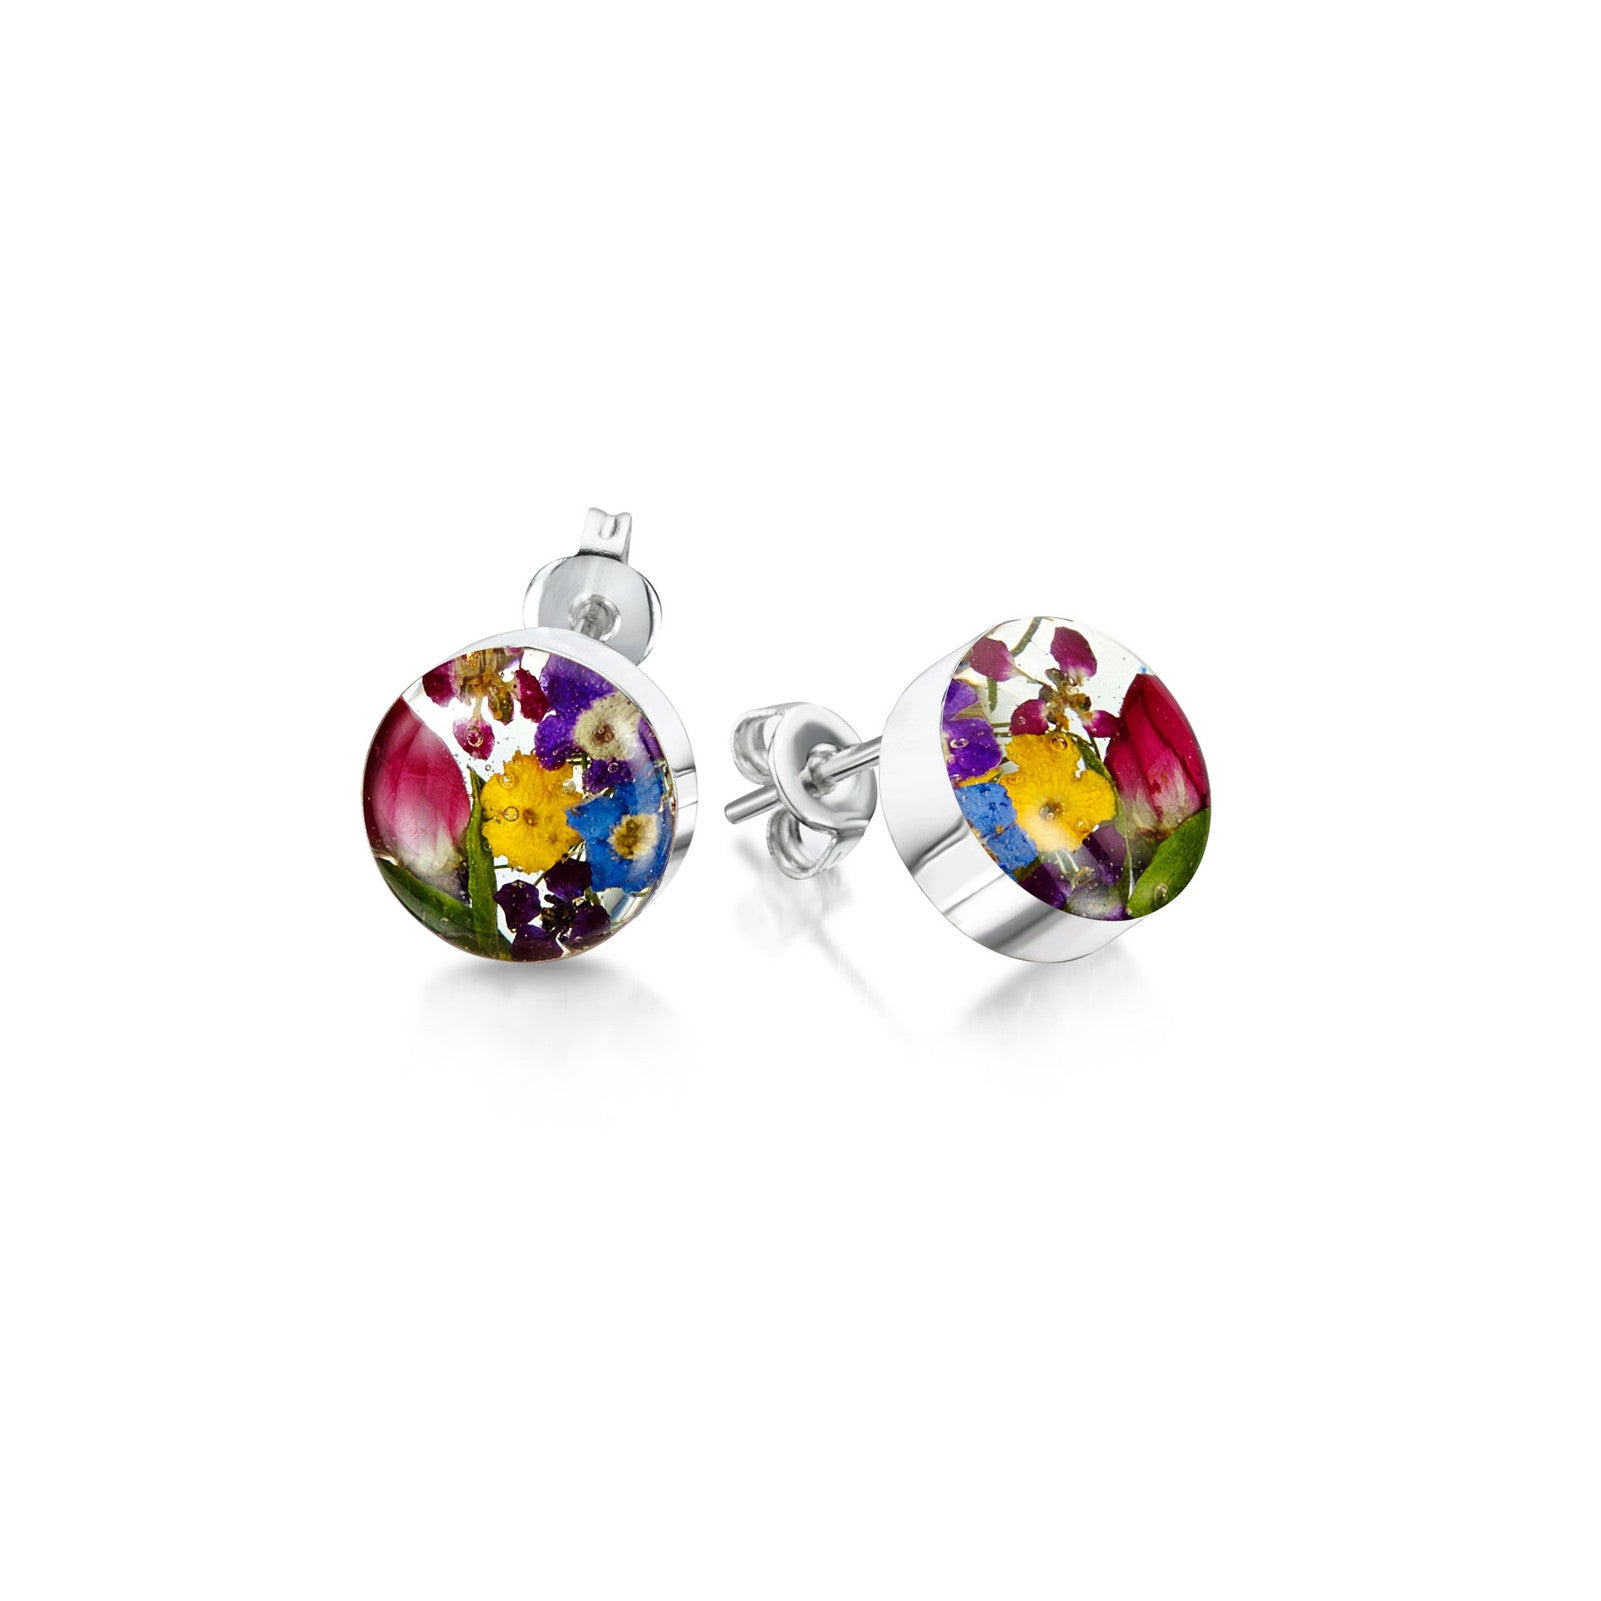 Silver stud Earrings - Mixed flowers + yellow - Small round